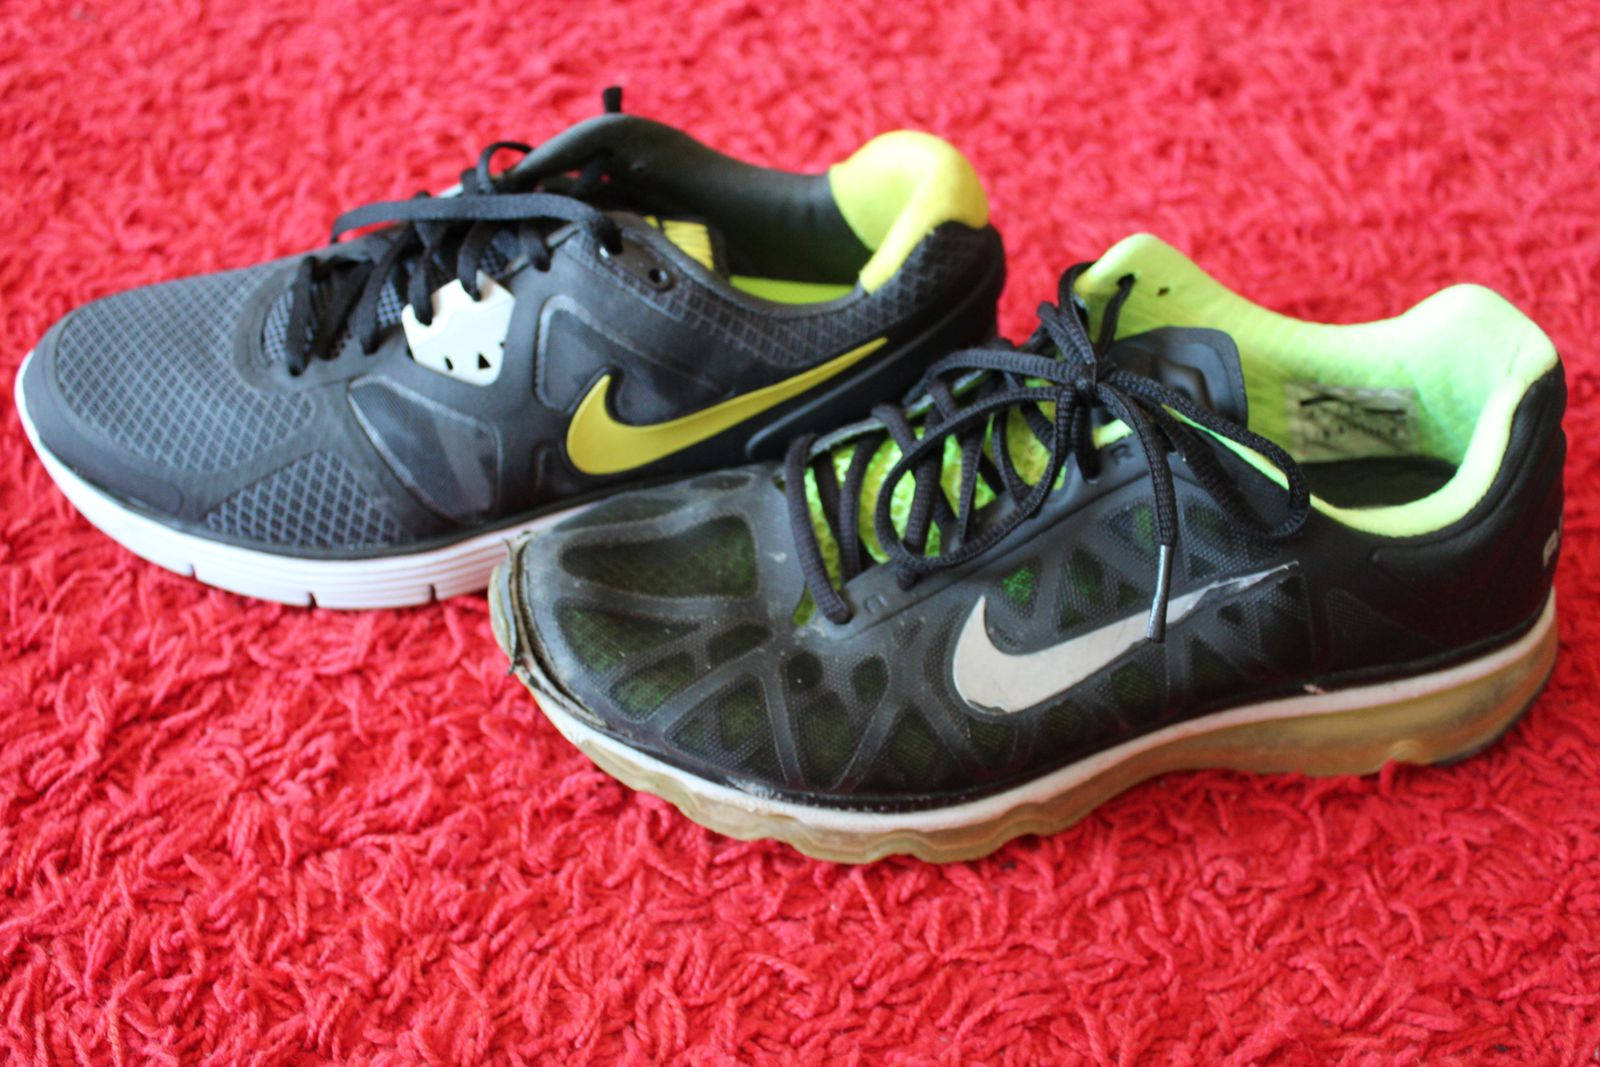 485cdec7117 COMPARATIF CHAUSSURE RUNNING   NIKE LUNARGLIDE 3 VS AIR MAX 2011 ...